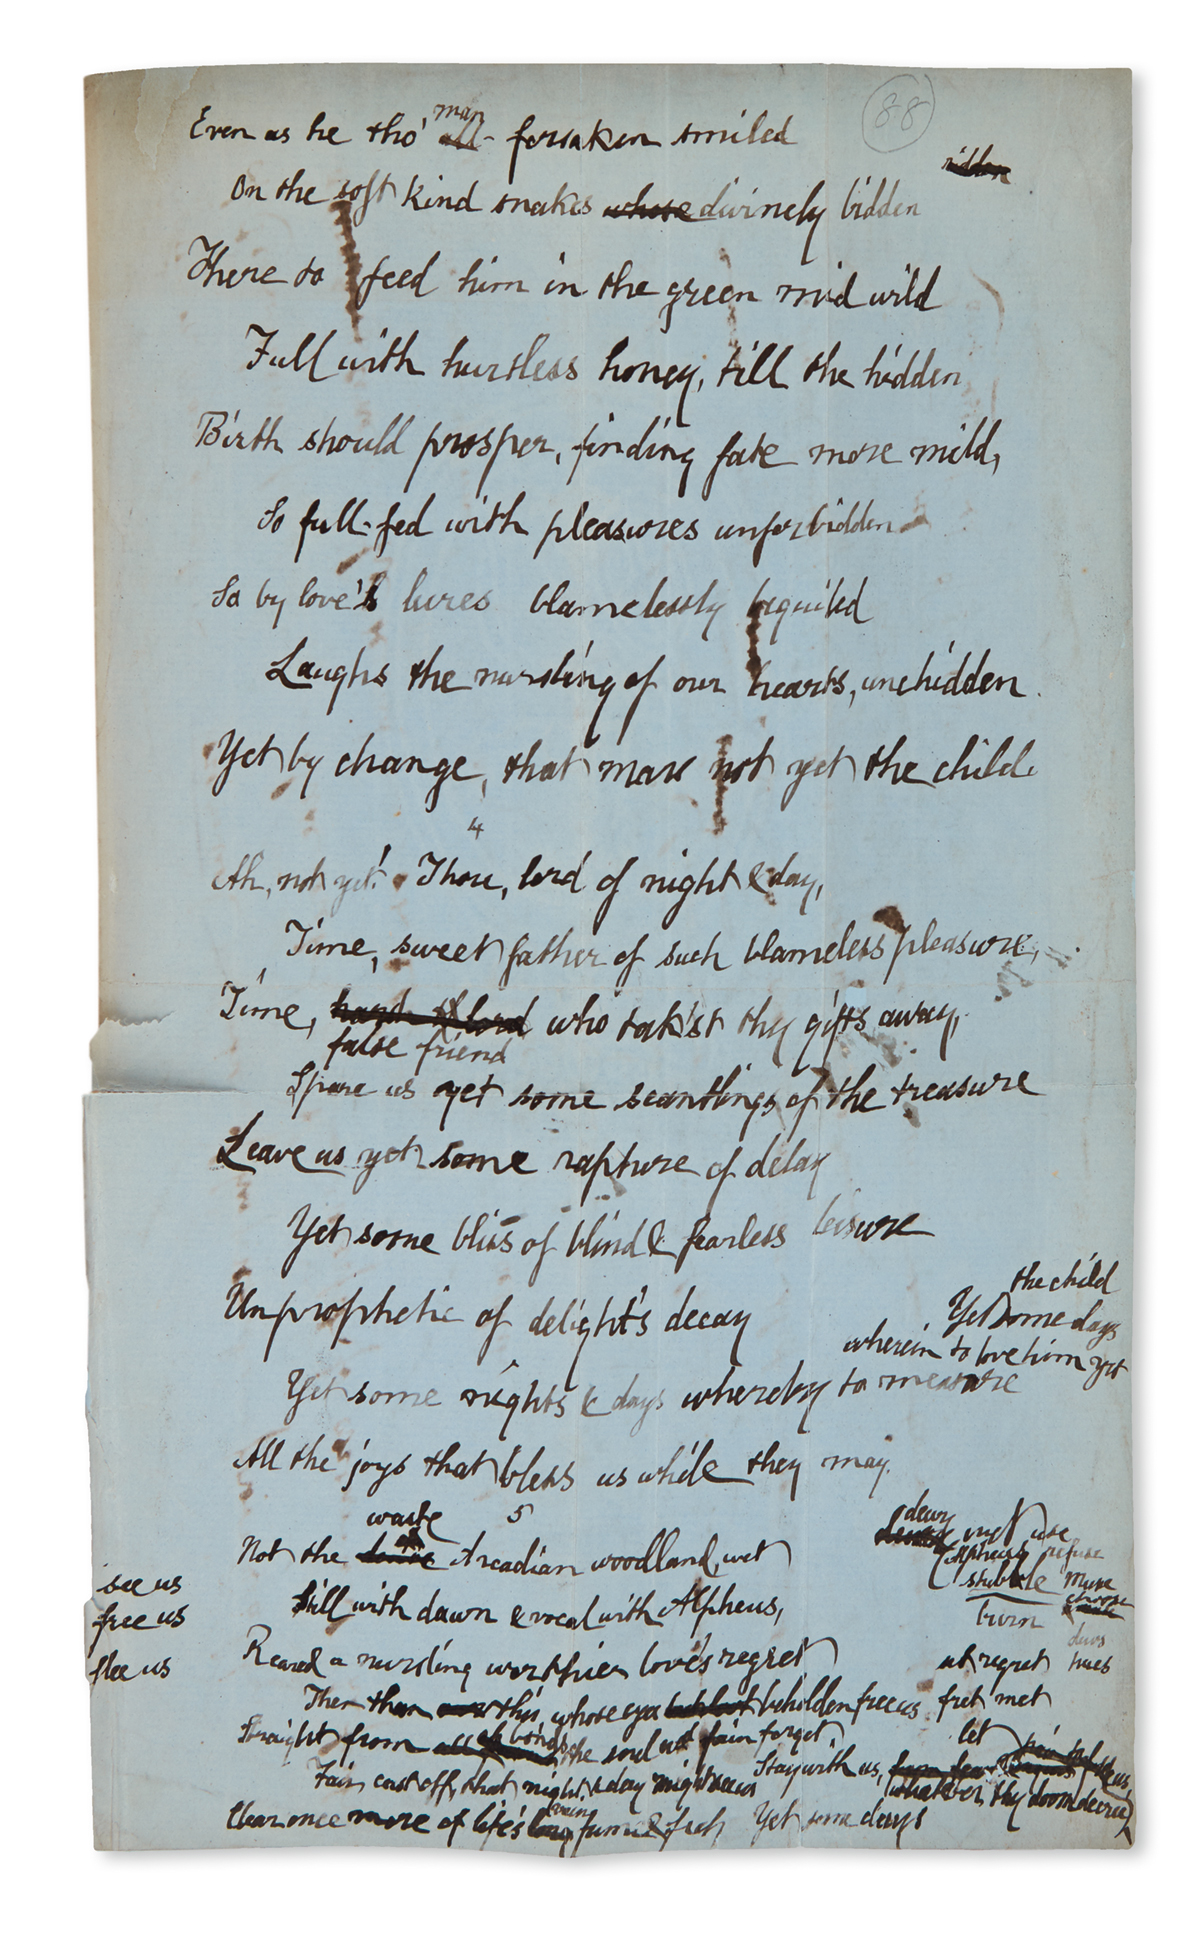 SWINBURNE, ALGERNON CHARLES. A Midsummer Holiday, with three Autograph Manuscripts, unsigned, bound in near the relevant printed poem.